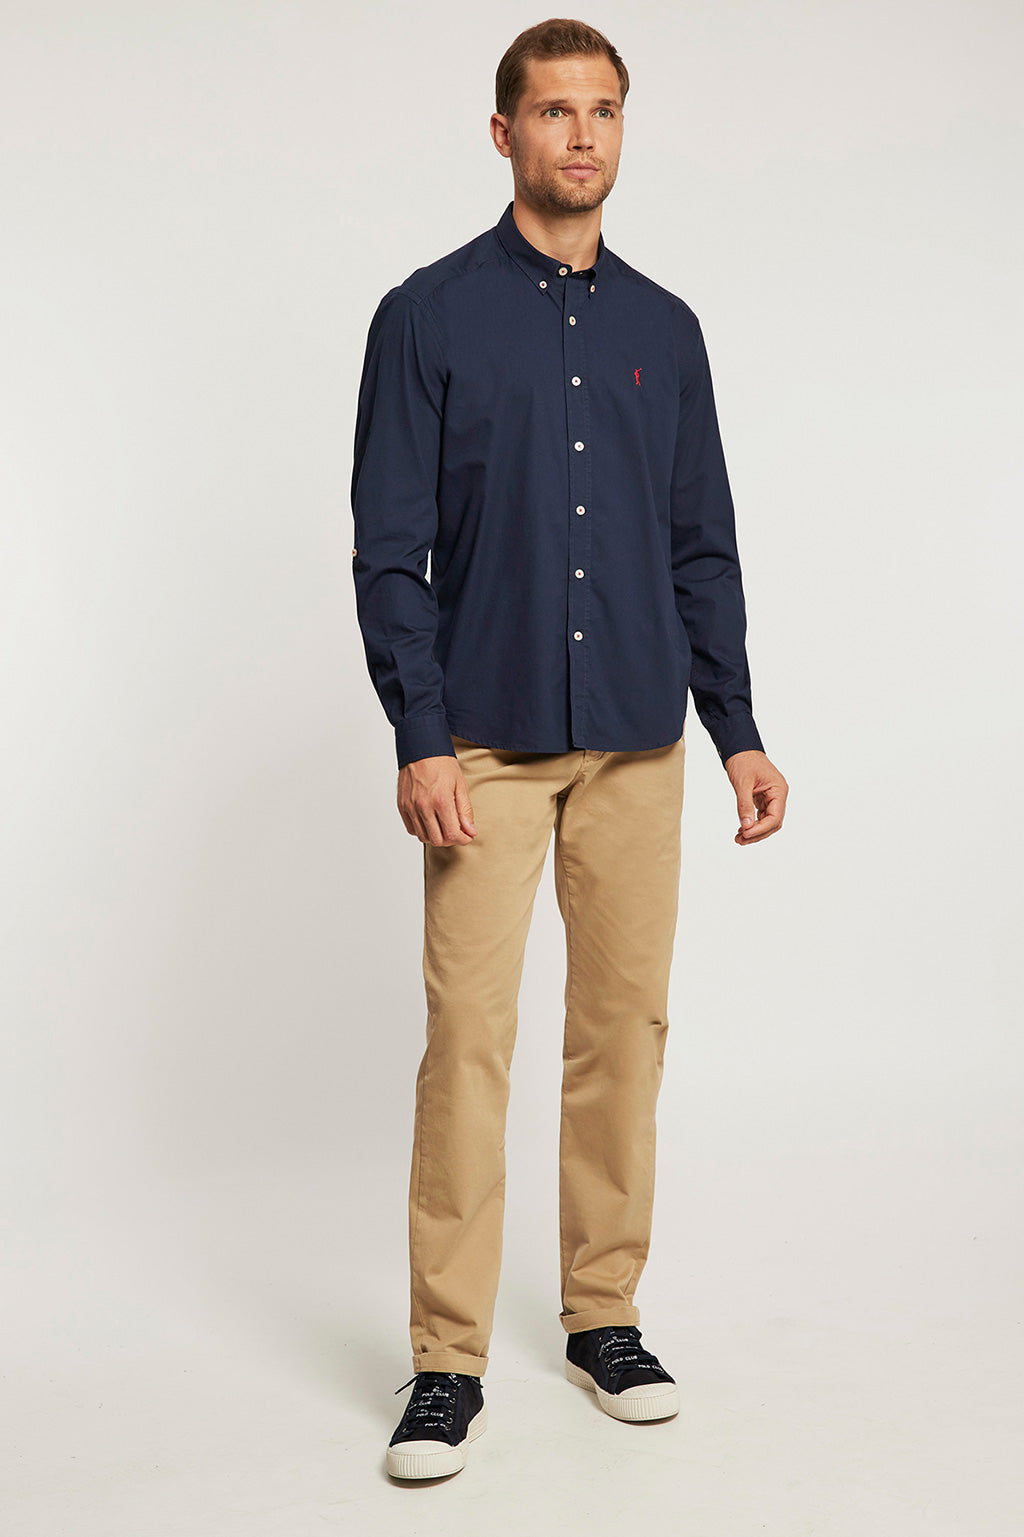 Navy blue poplin custom fit shirt